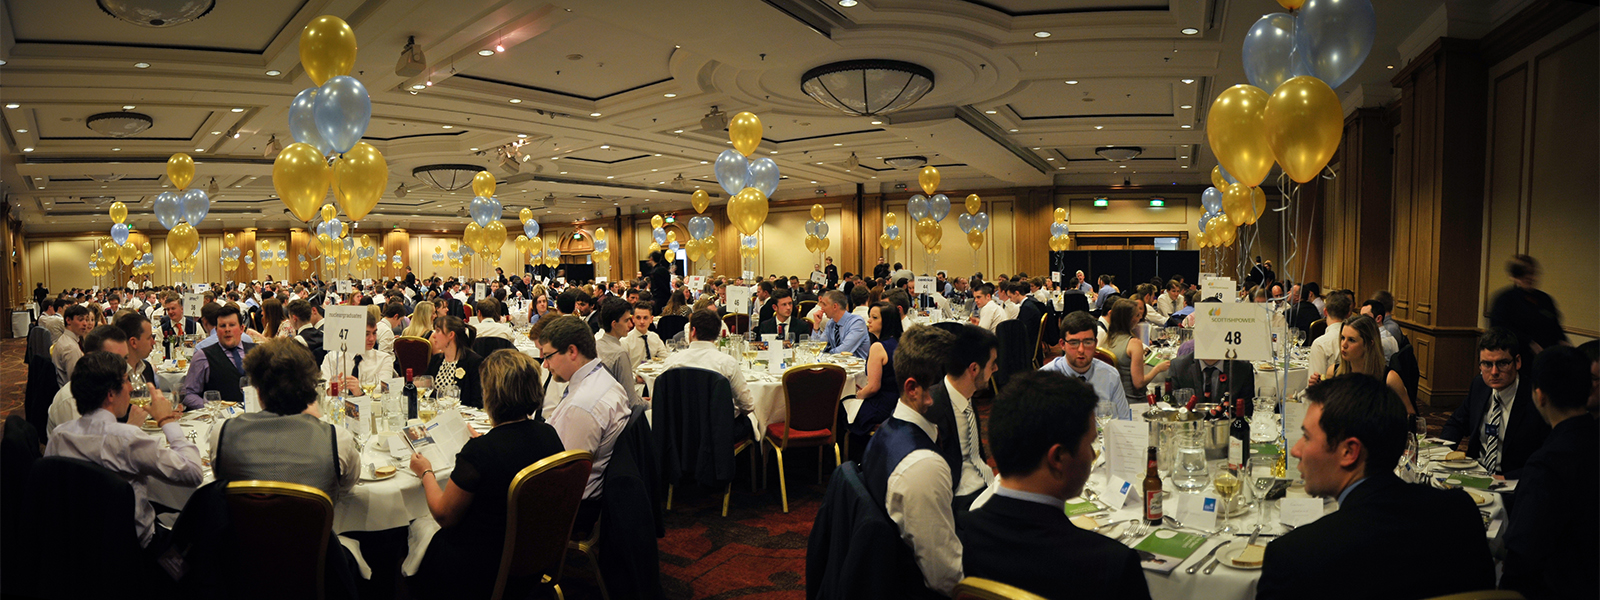 Students at Engineering Gala dinner